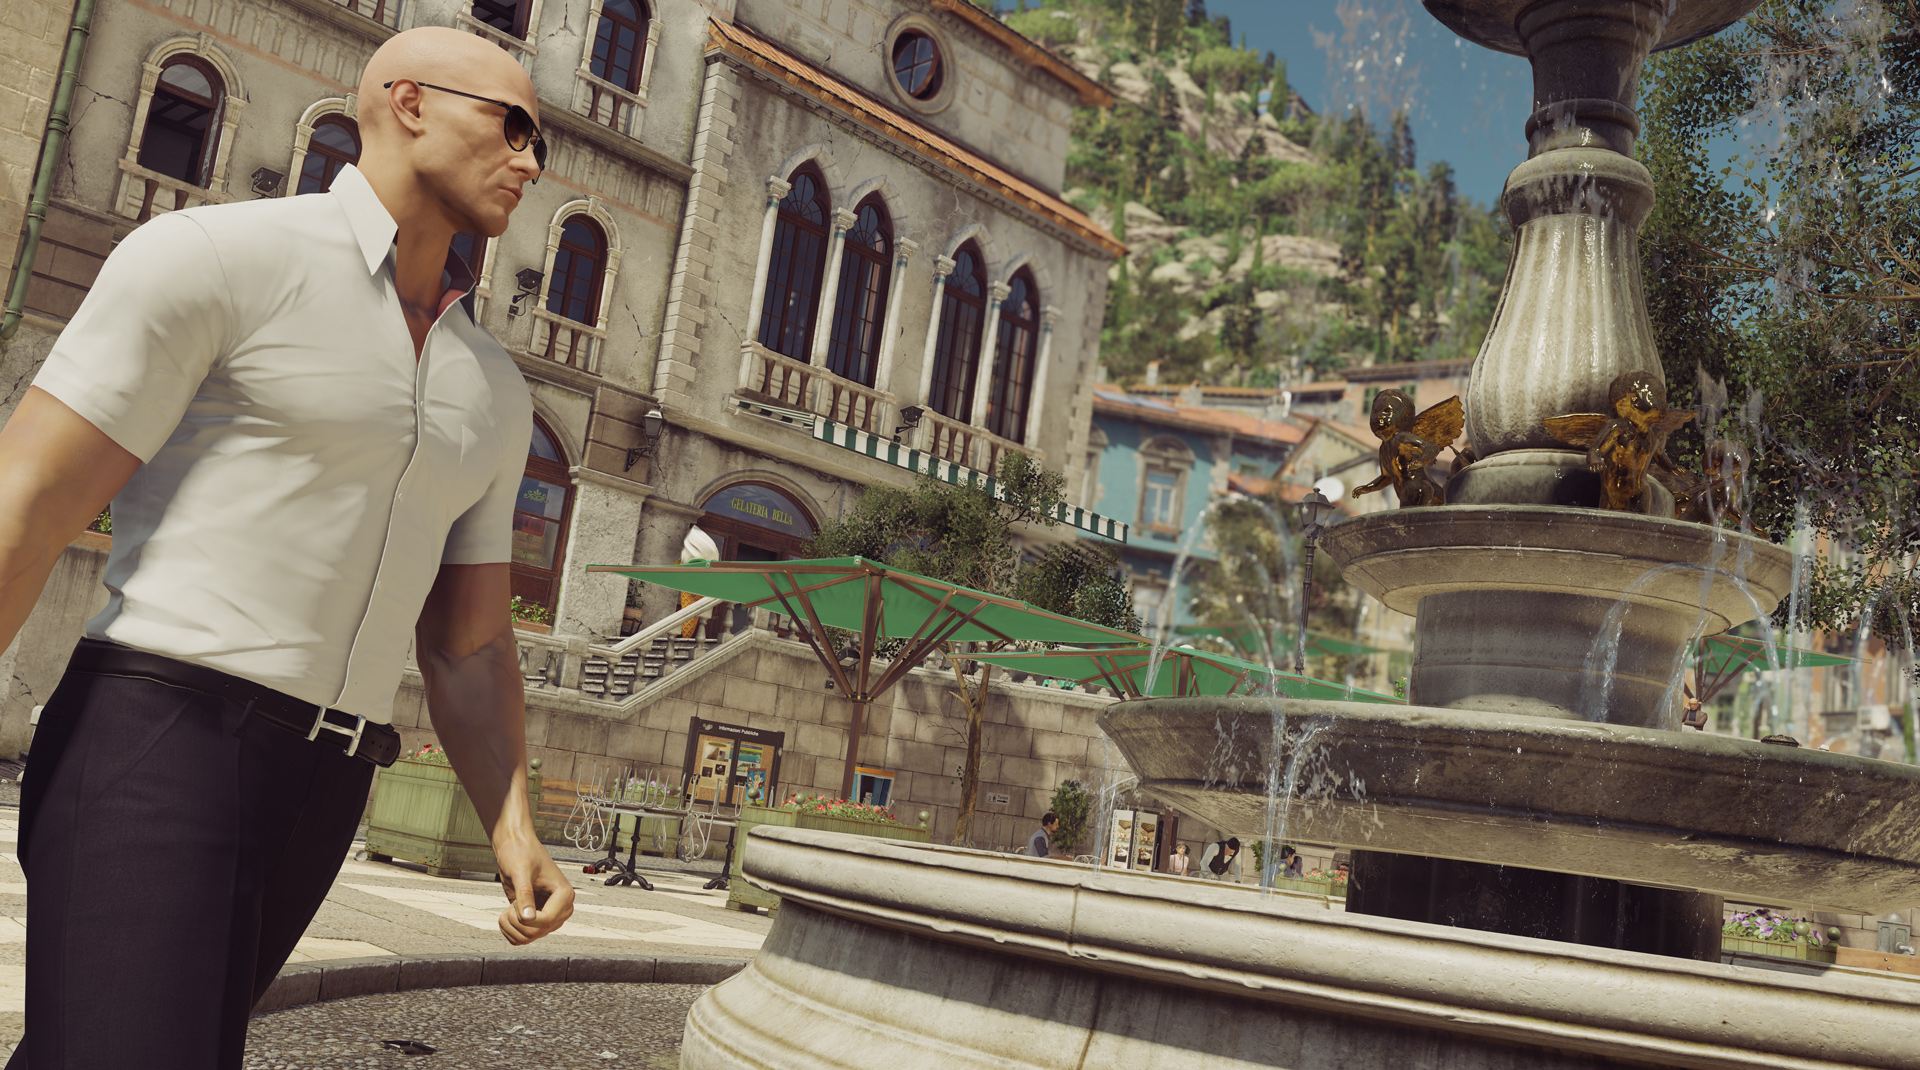 Hitman Episode 3 Release Date Out Next Week